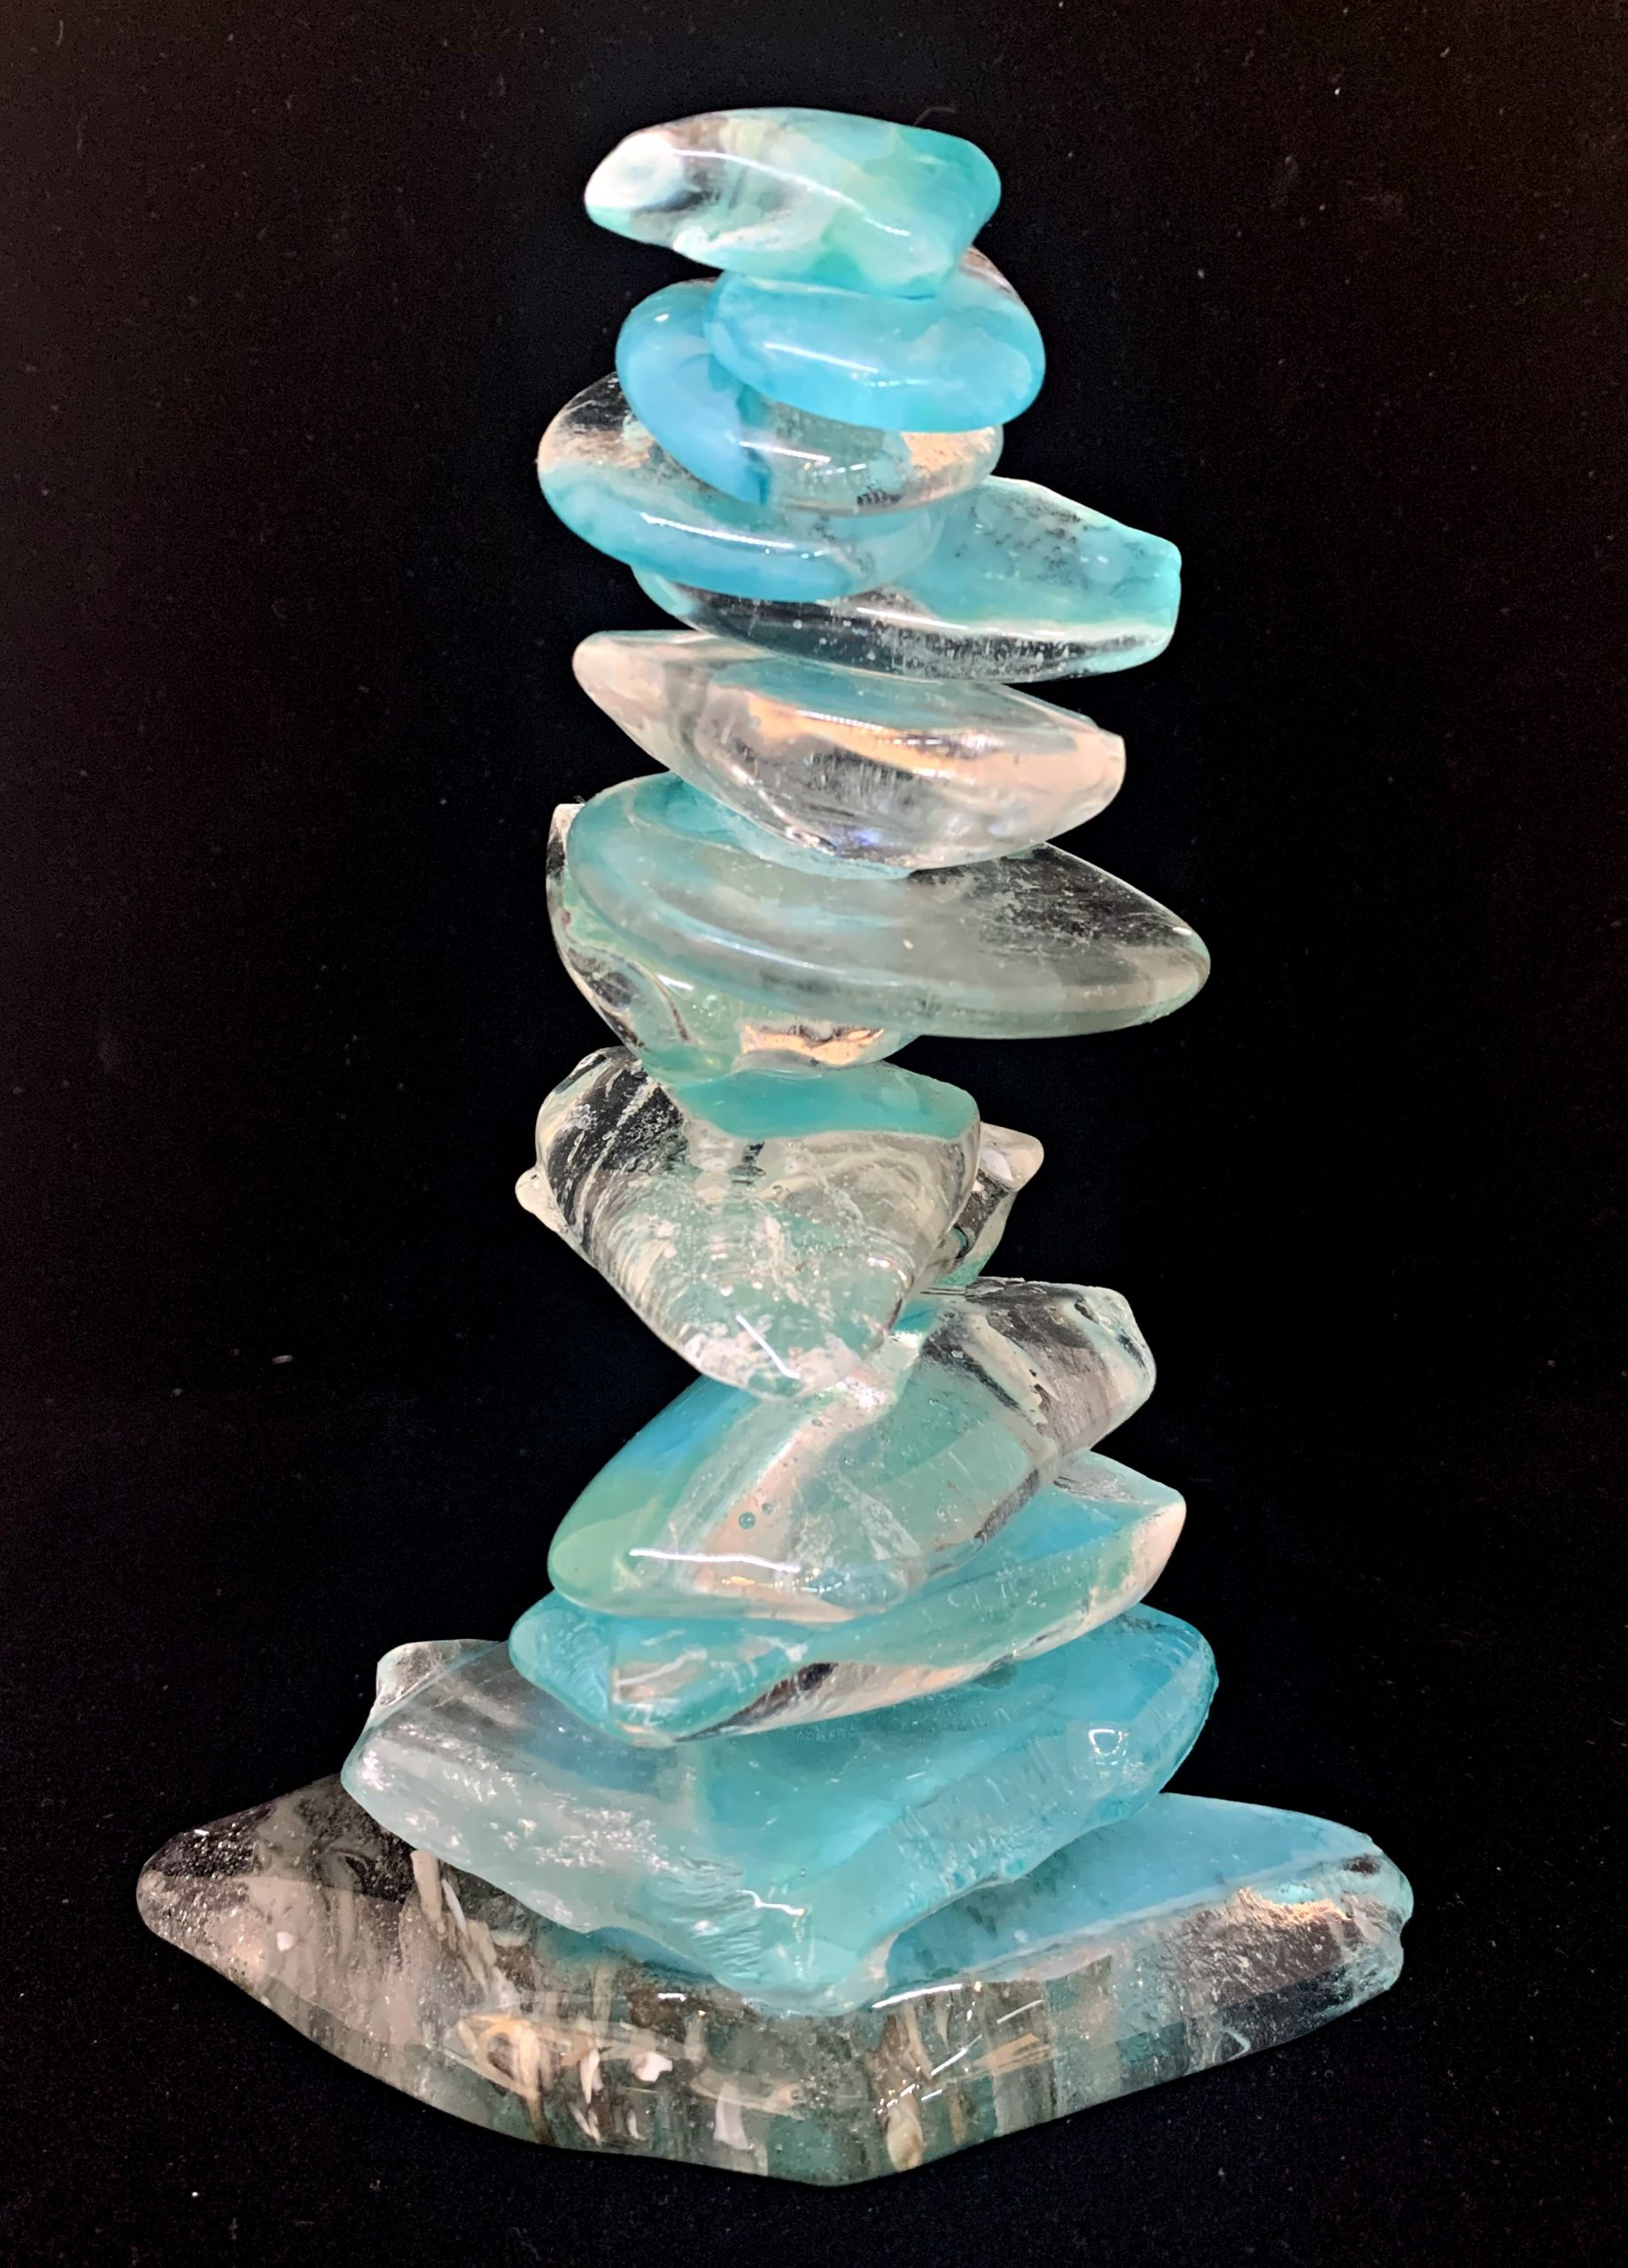 Cast Glass Rocky Mountain Cairn 21 by Heather Cuell | Effusion Art Gallery + Cast Glass Studio, Invermere BC